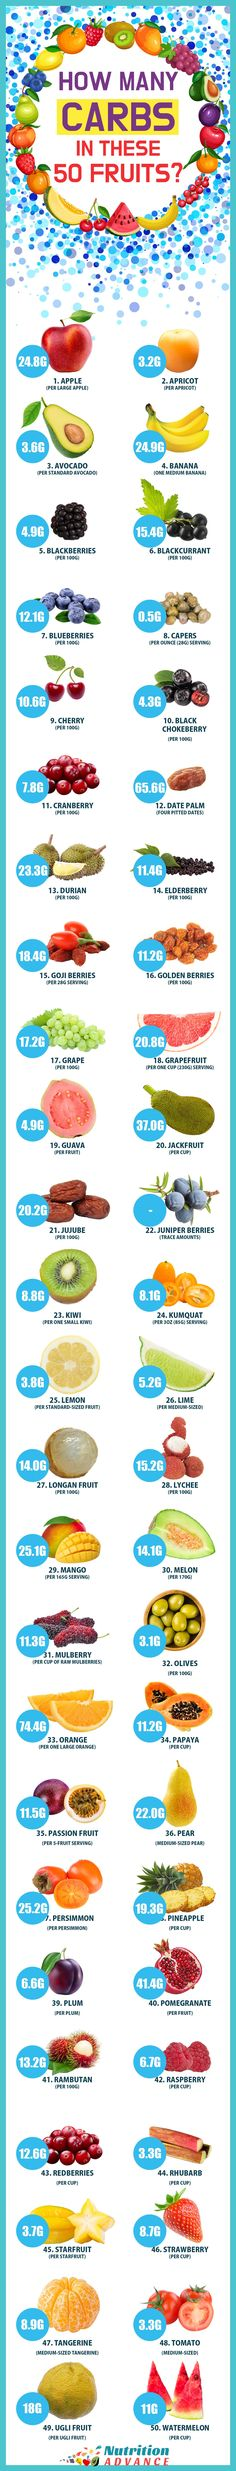 Net Carbs in 50 Popular Fruits | How Many Carbs Are in These 50 Fruit? This infographic (and article) lists 50 types of fruit and their nutritional profiles and health benefits. So, whether you want to know how much carbs your favorite fruit has, or any other information, this is a guide that provides the answers. It's important to know the carb content of these fruits if you're on a low carb or keto diet.| Read more: http://nutritionadvance.com/healthy-foods/types-of-fruit | Via…